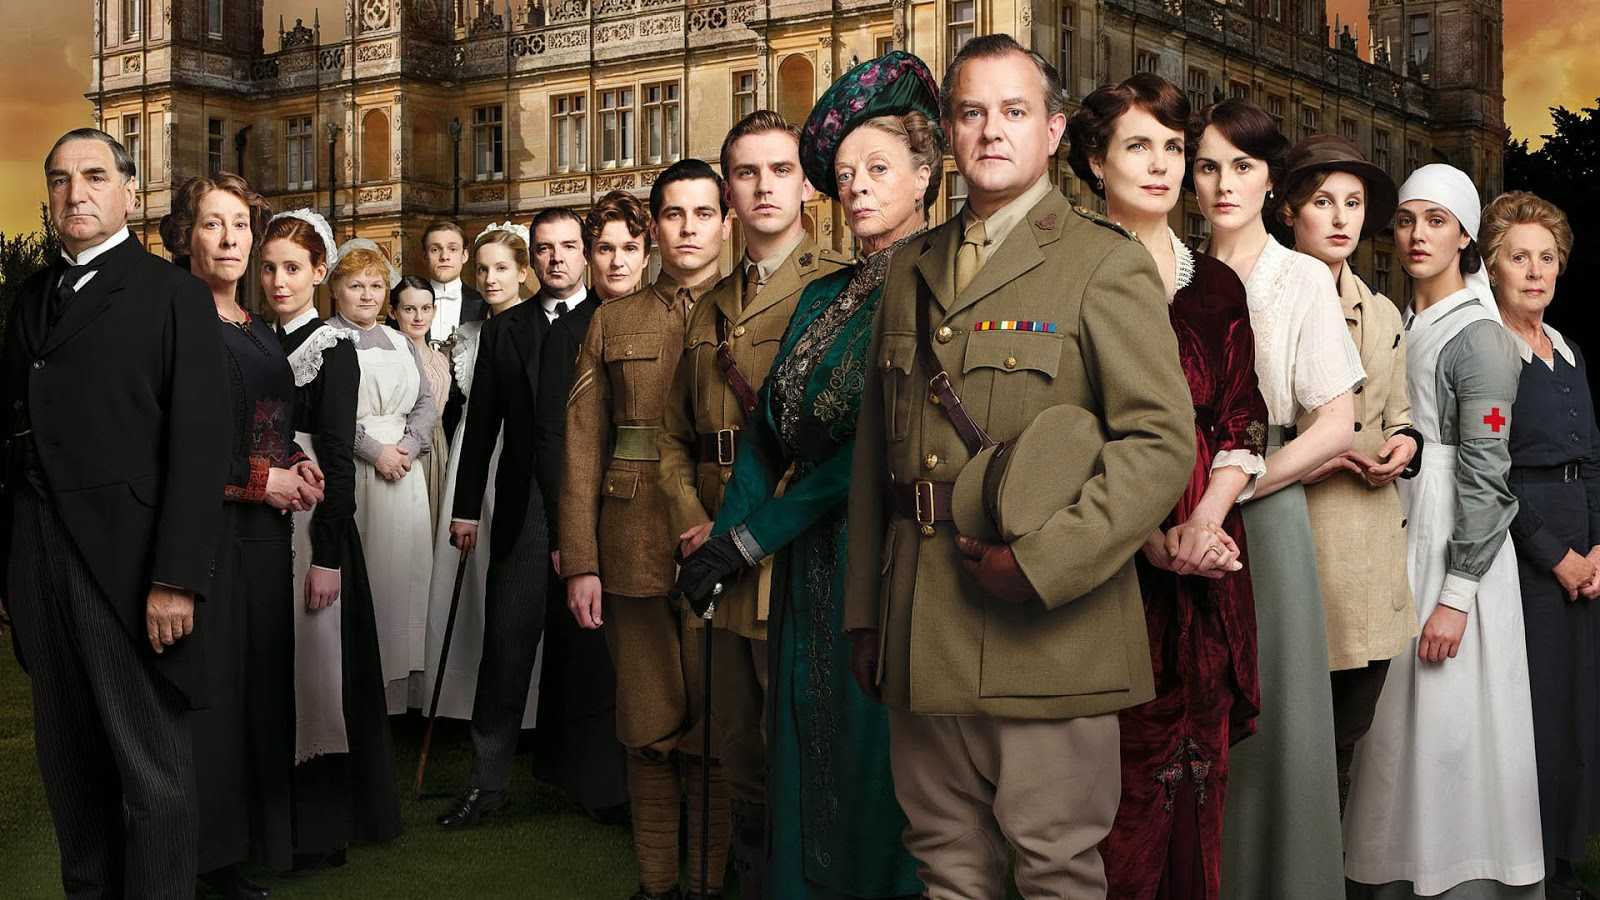 http://thedailyblog.co.nz/wp-content/uploads/2013/12/Downton-Abbey-Cast.jpg